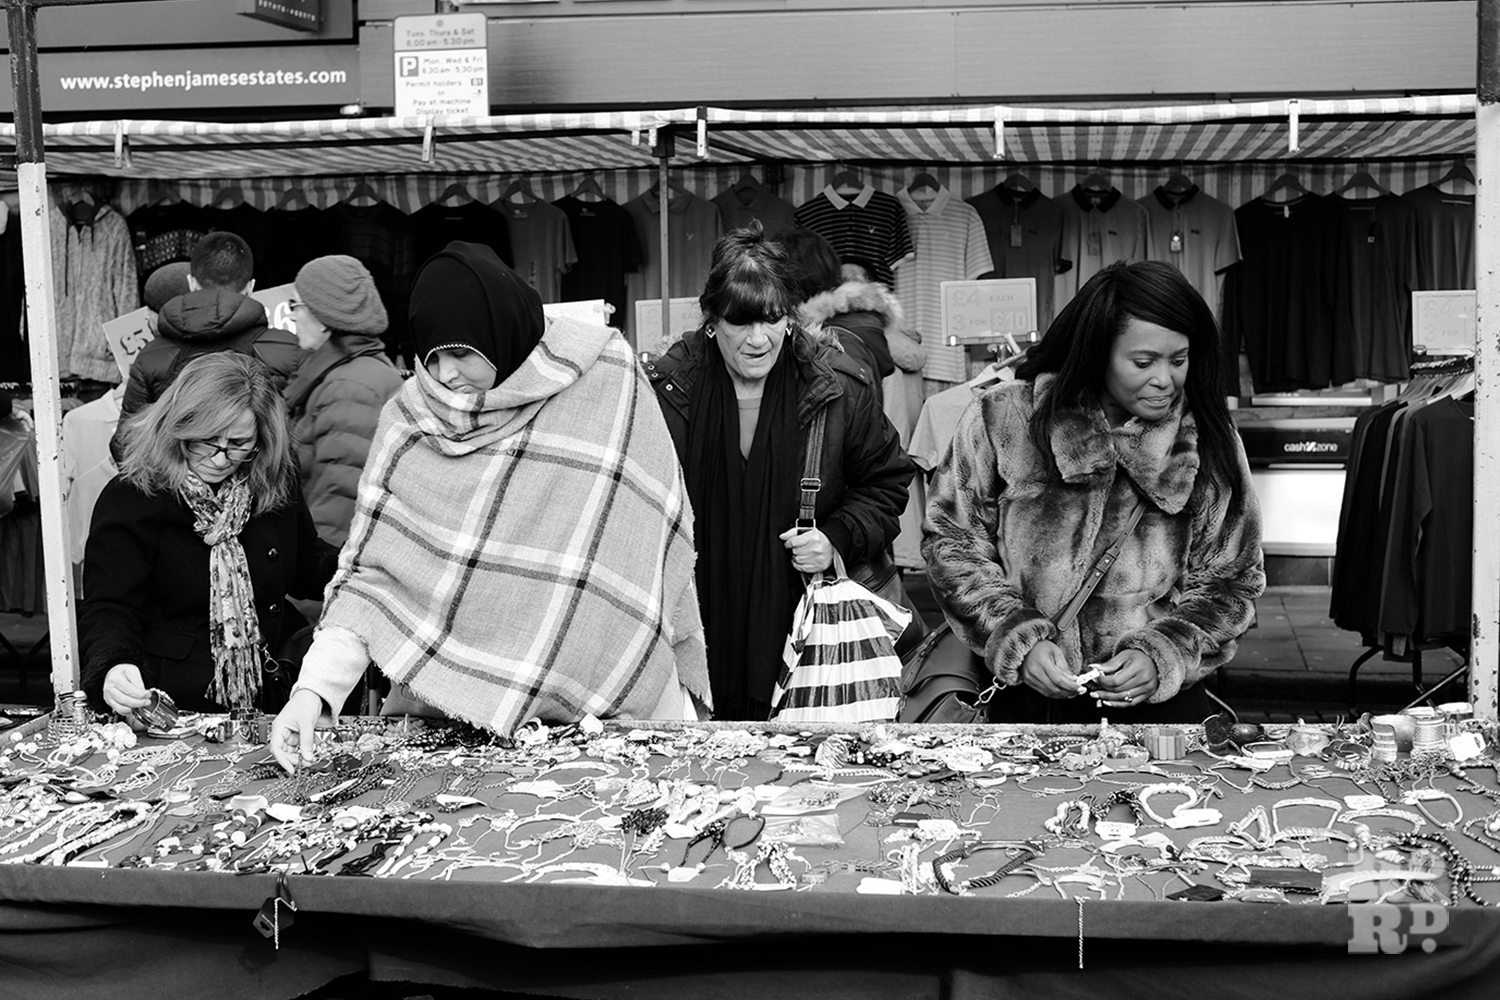 Roman Road Market stall selling jewellery with Asian and Black Afro-Caribbean women shoppers